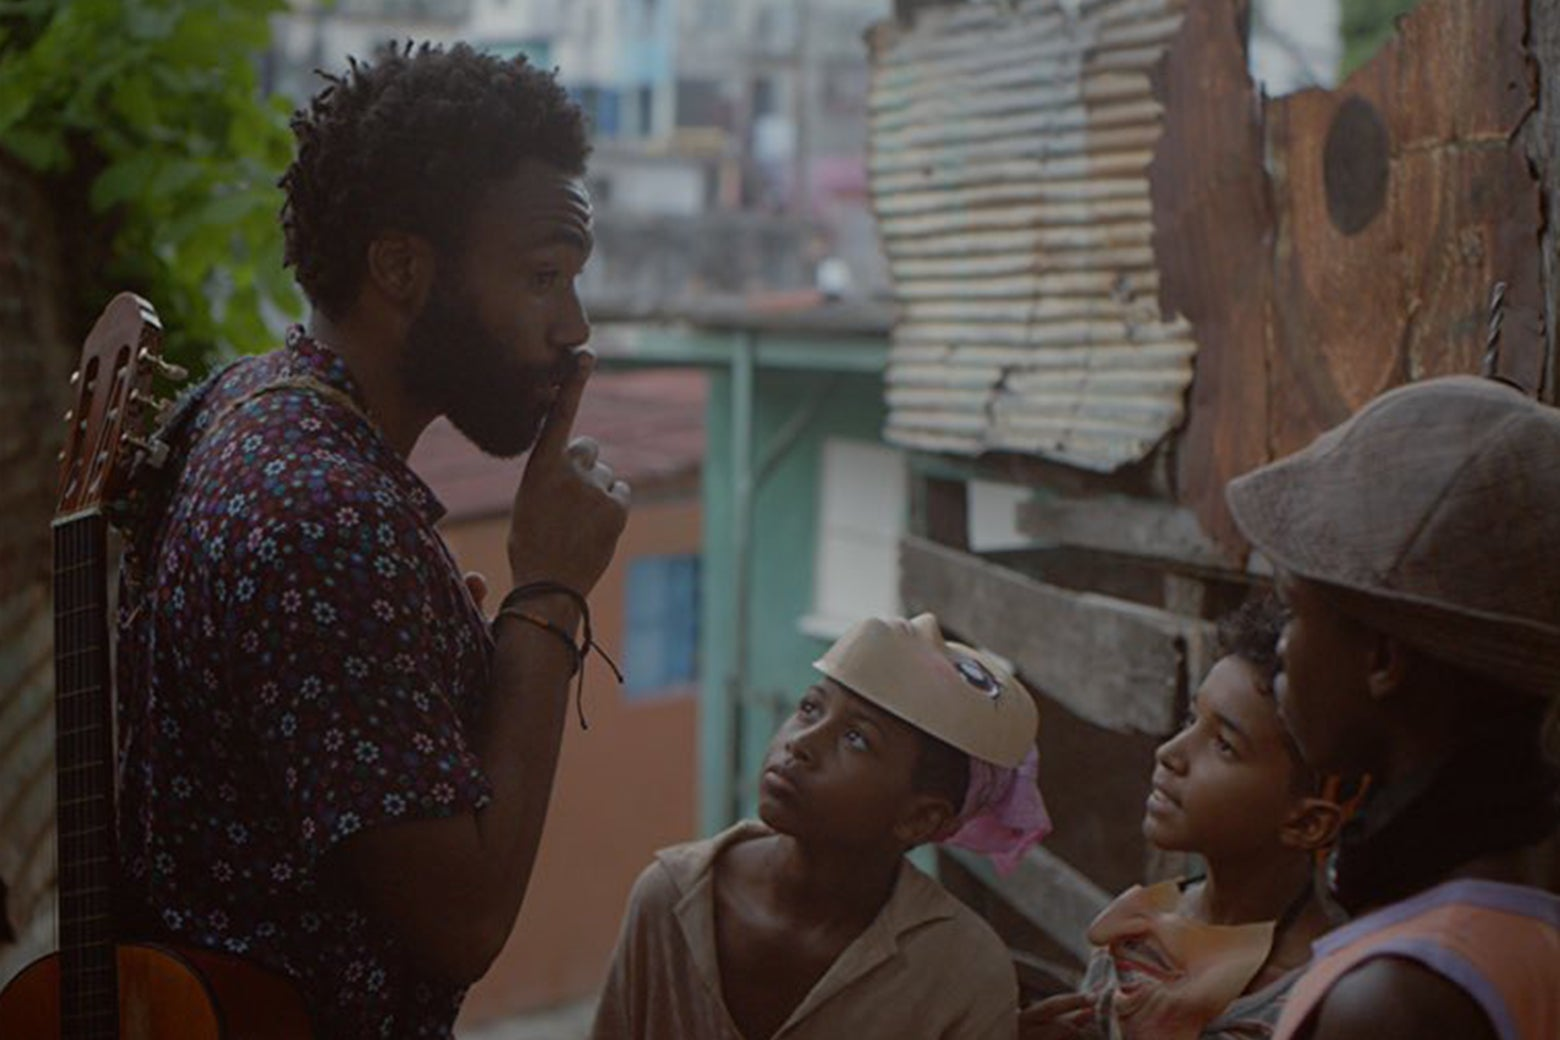 Donald Glover shushes some children in a still from Guava Island.